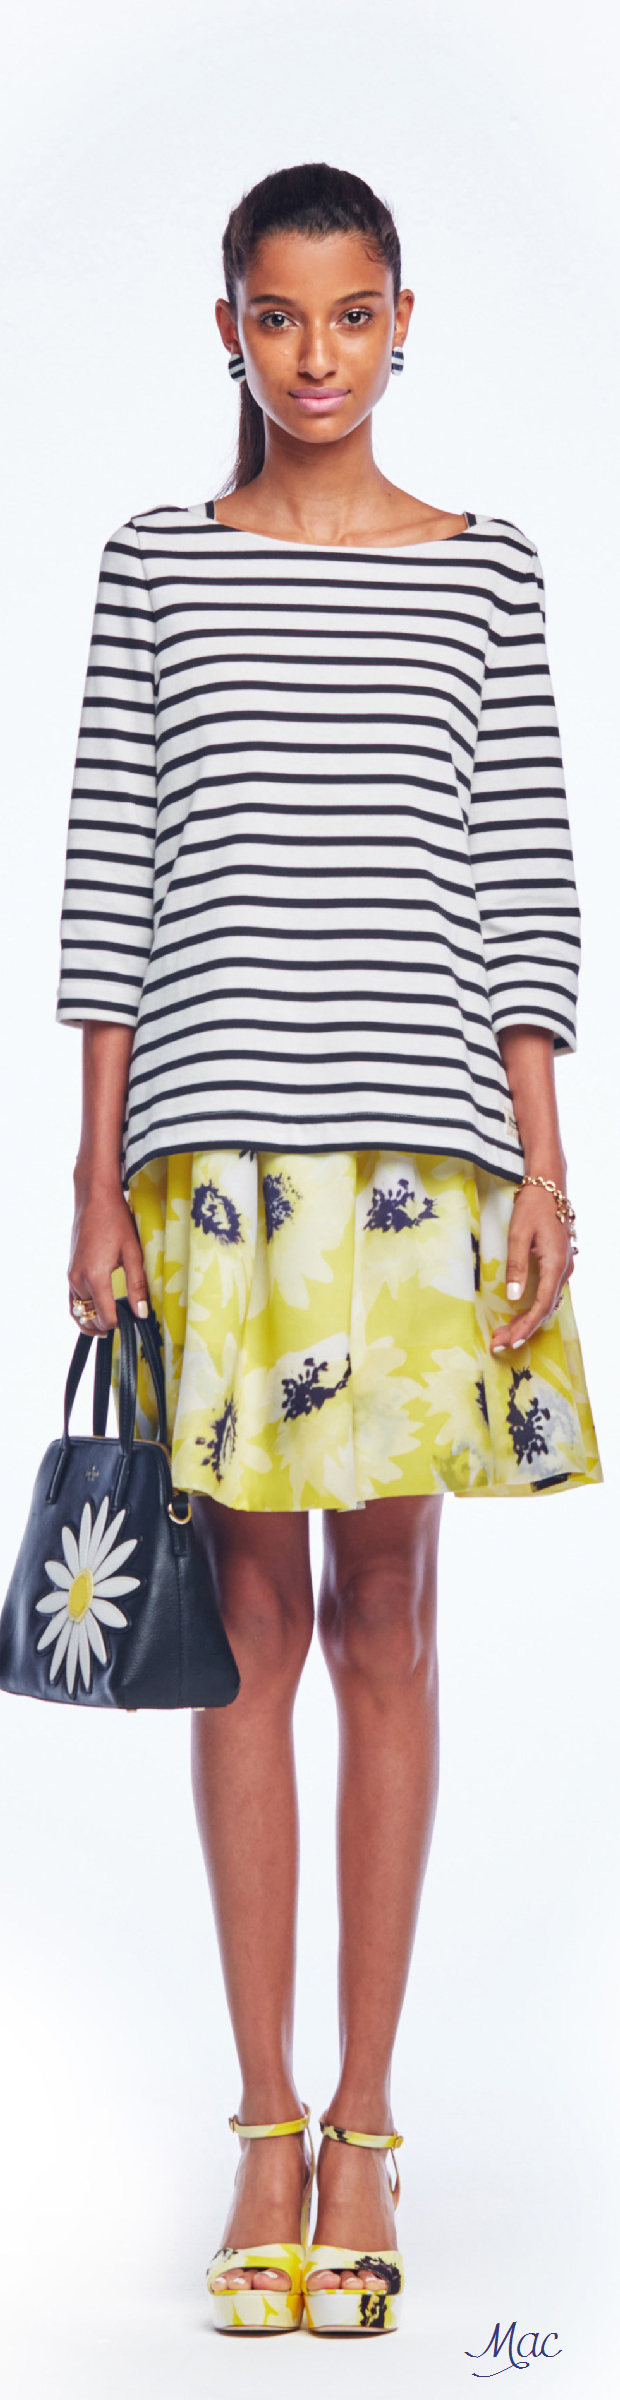 Spring 2016 Ready-to-Wear Kate Spade New York